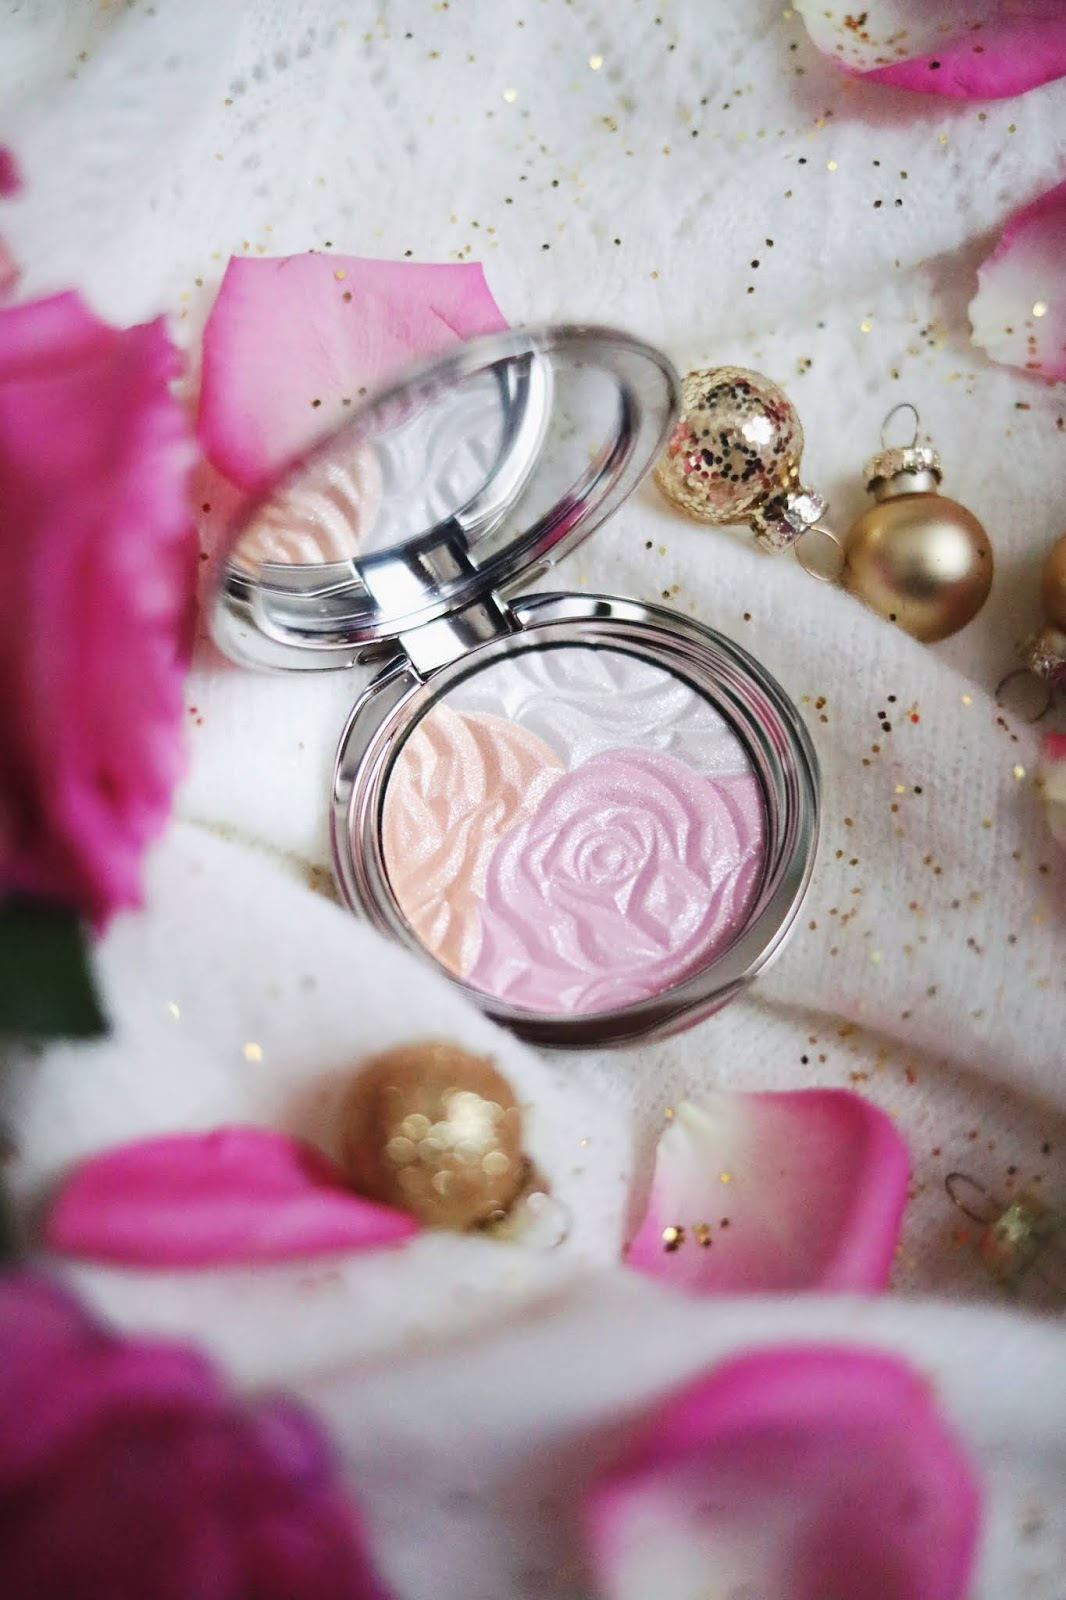 BY TERRY , NOËL , STARLIGHT ROSE , STARLIGHT ROSE CC POWDER , STARLIGHT ROSE GLOW BOOSTER CC SERUM , BY TERRY PARIS, , rosemademoiselle, rose mademoiselle , blog beauté , paris